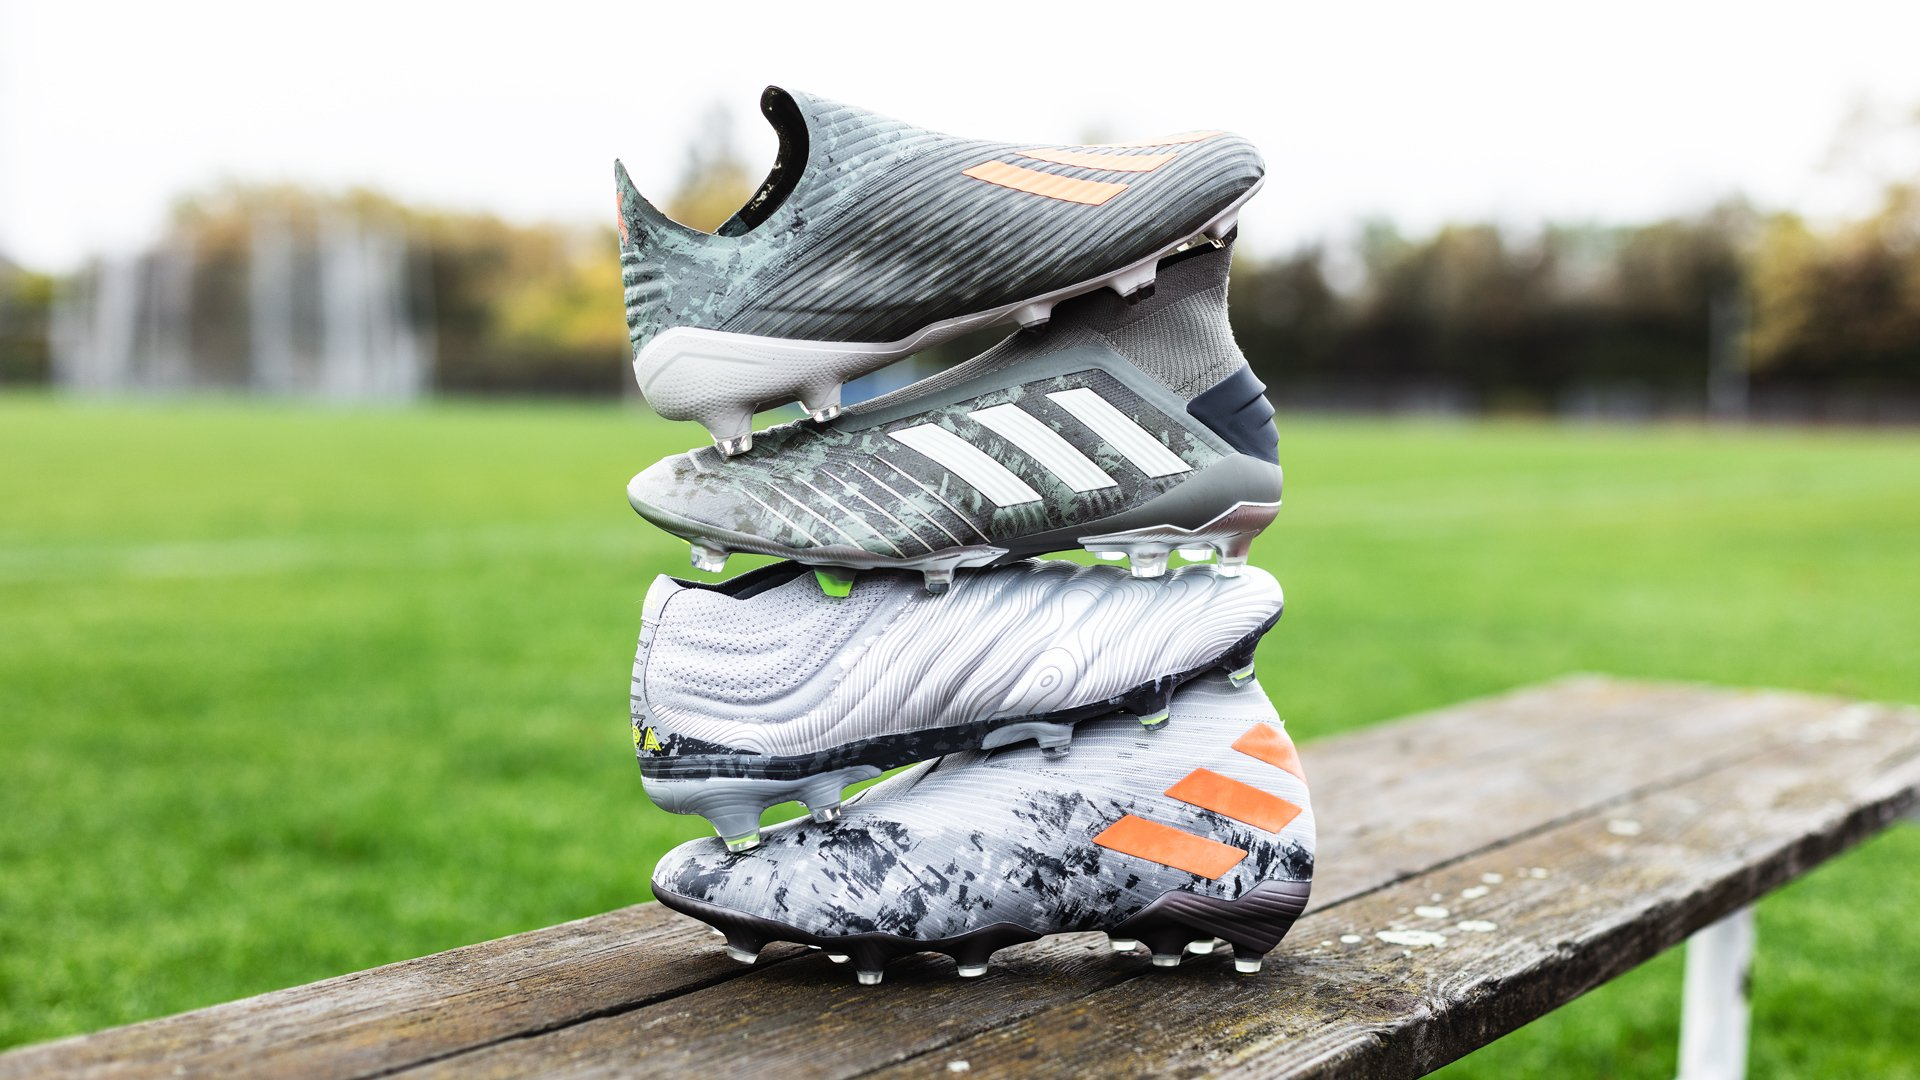 adidas Launch The 'Encryption Code' Pack SoccerBible